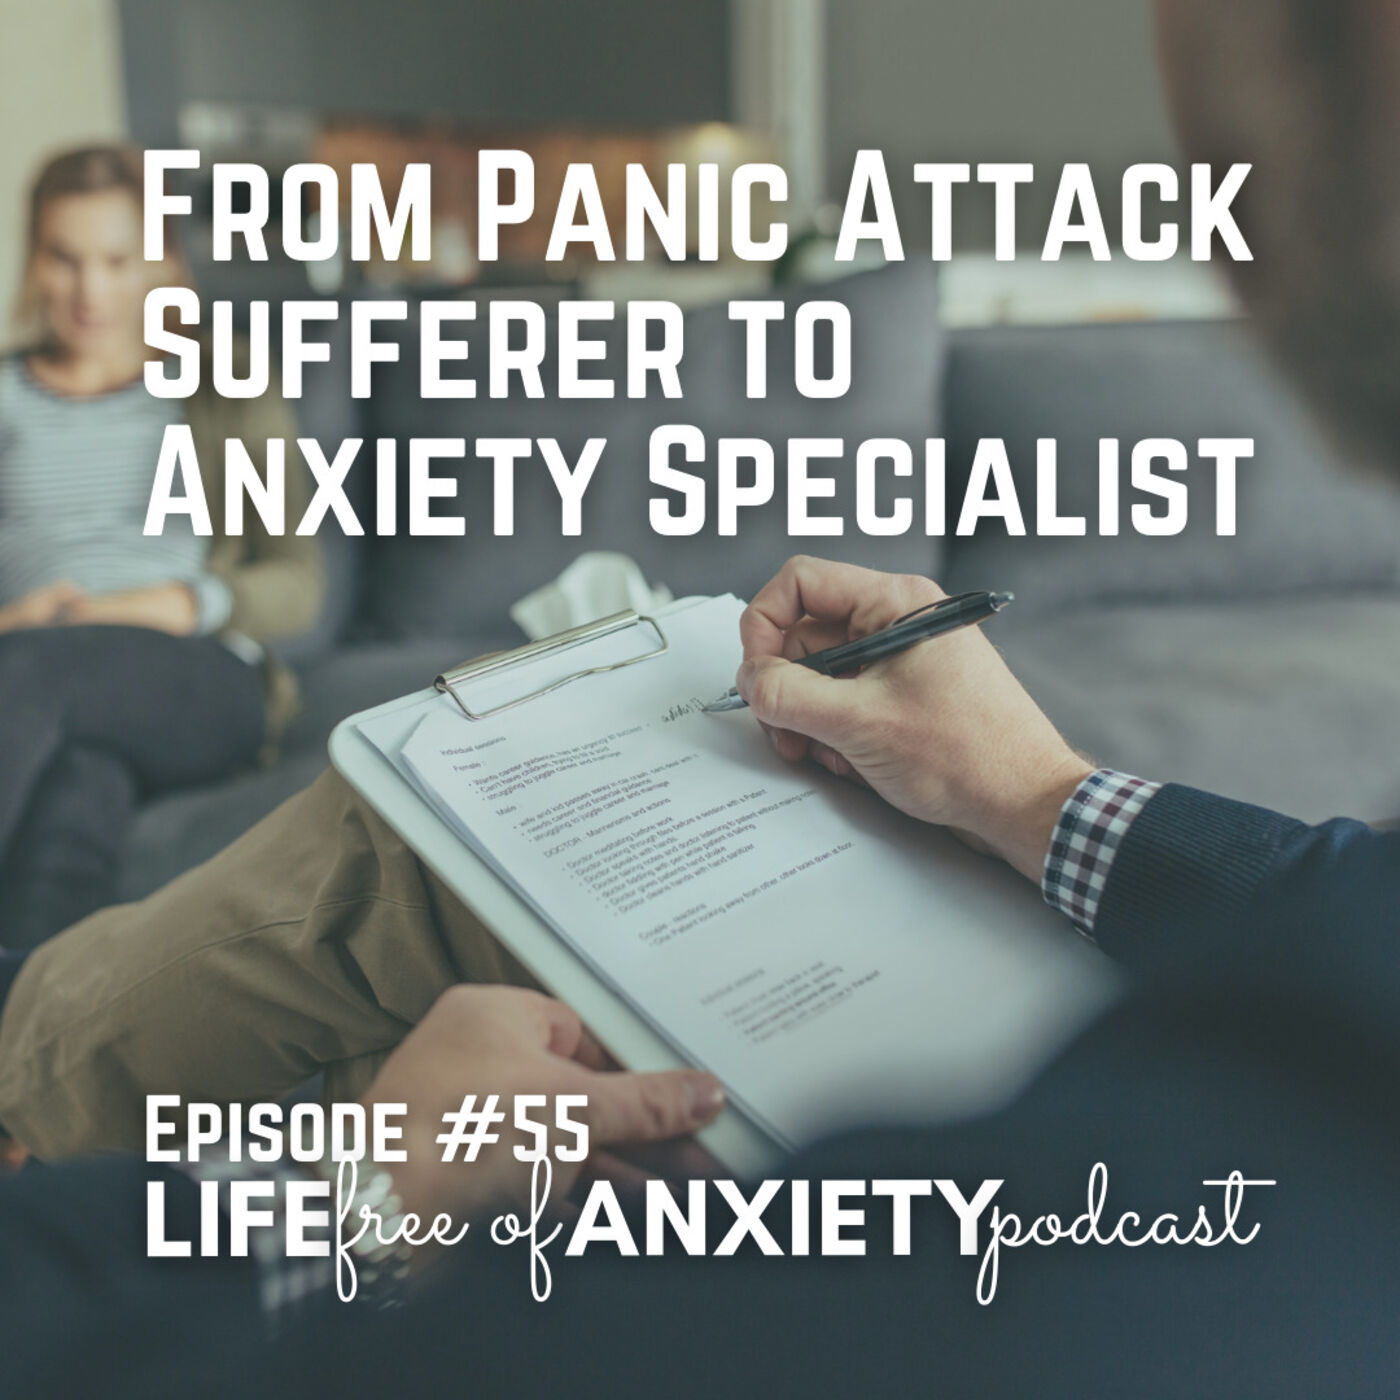 E55 - From Panic Attack Sufferer to Anxiety Specialist, Meet Dr. Charles Barr, Licensed Clinical Psychologist